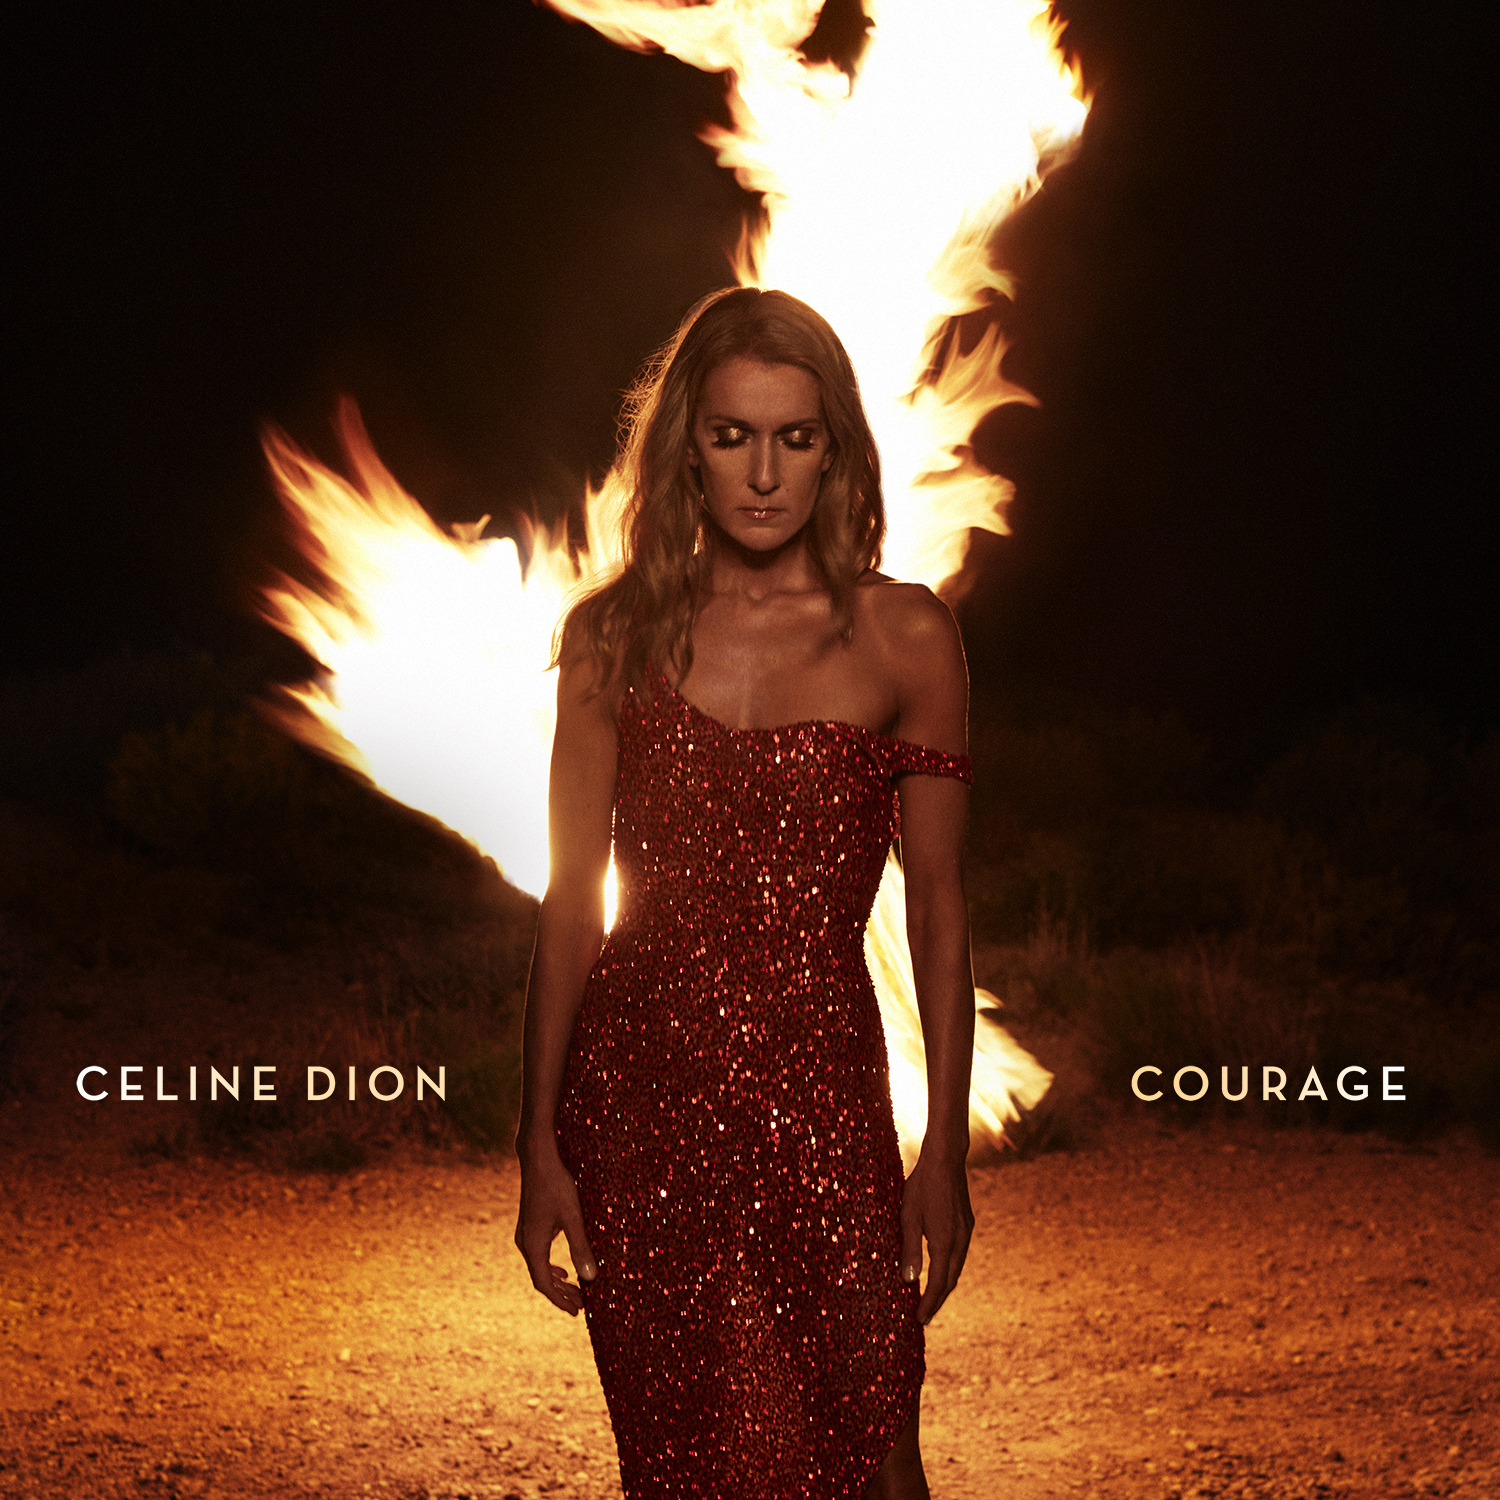 Courage by Celine Dion